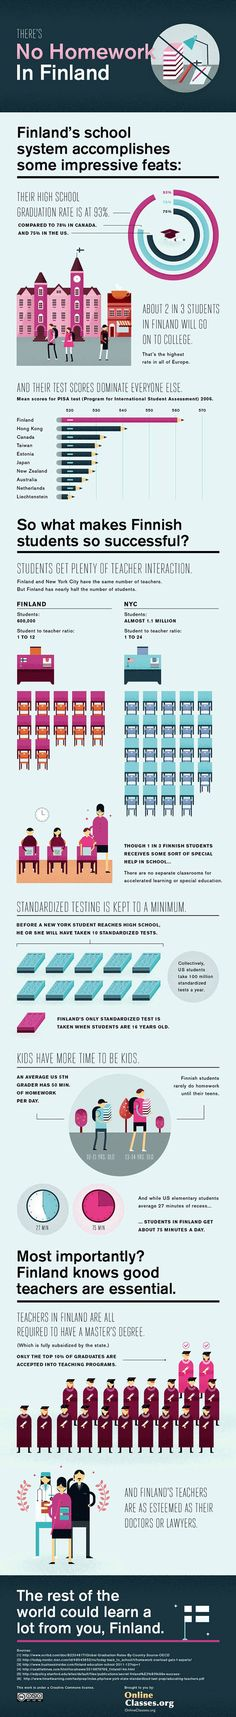 Finland's School System - #Infographic | Finland | Scoop.it